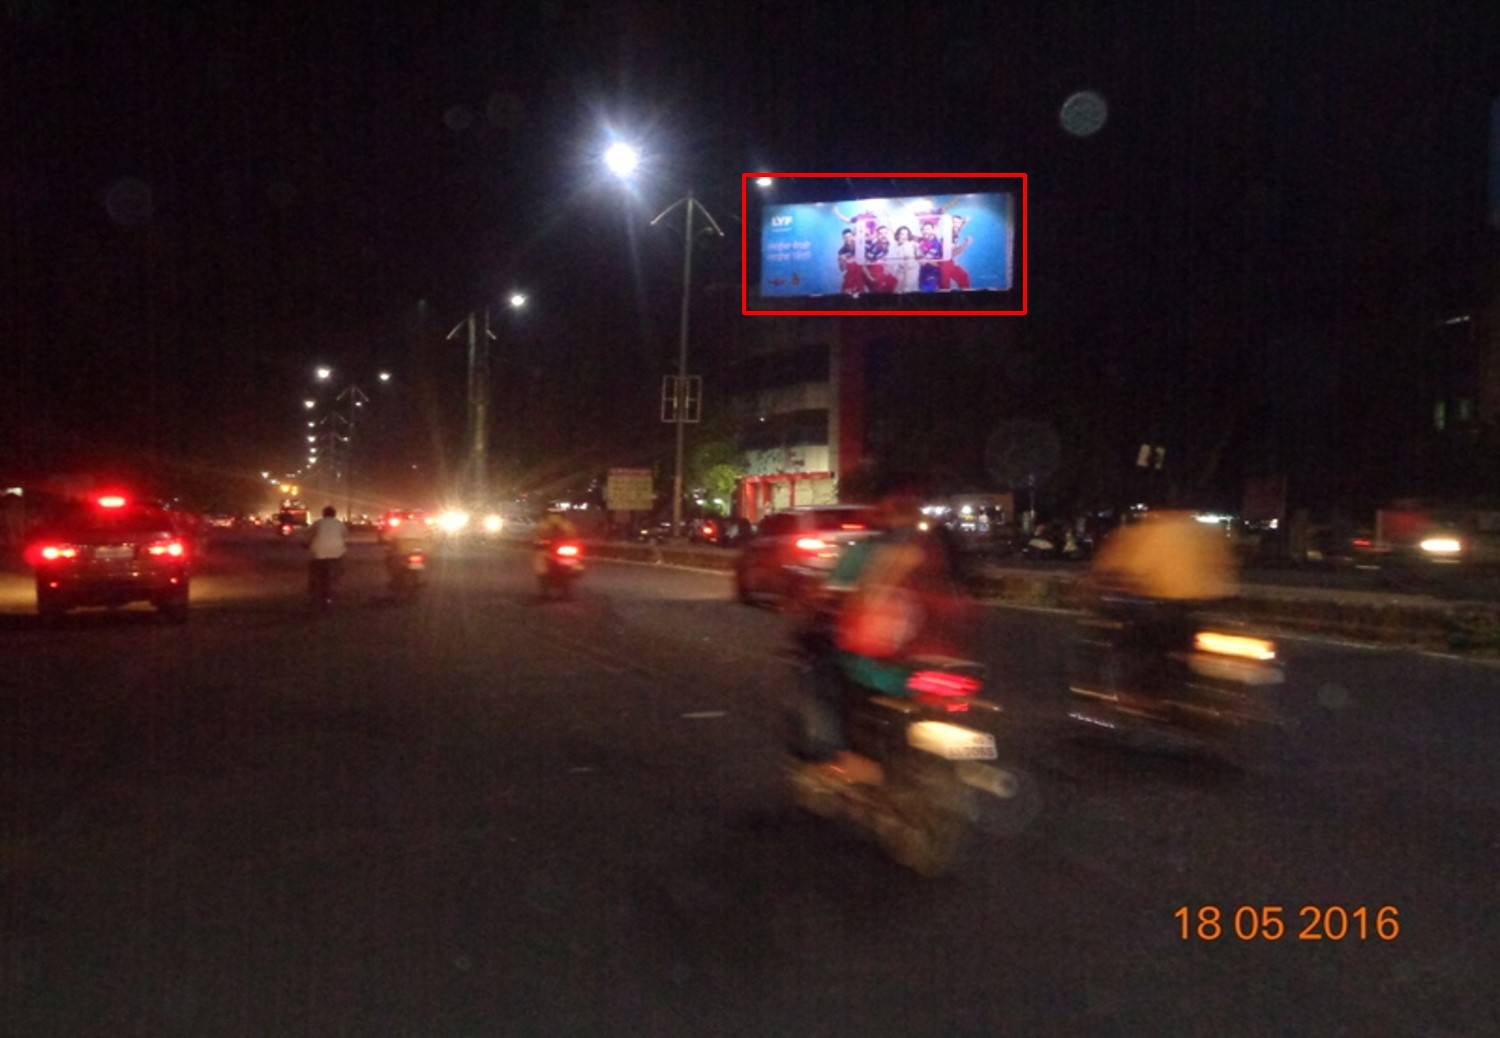 Pratap Nagar Ring Road, Nagpur